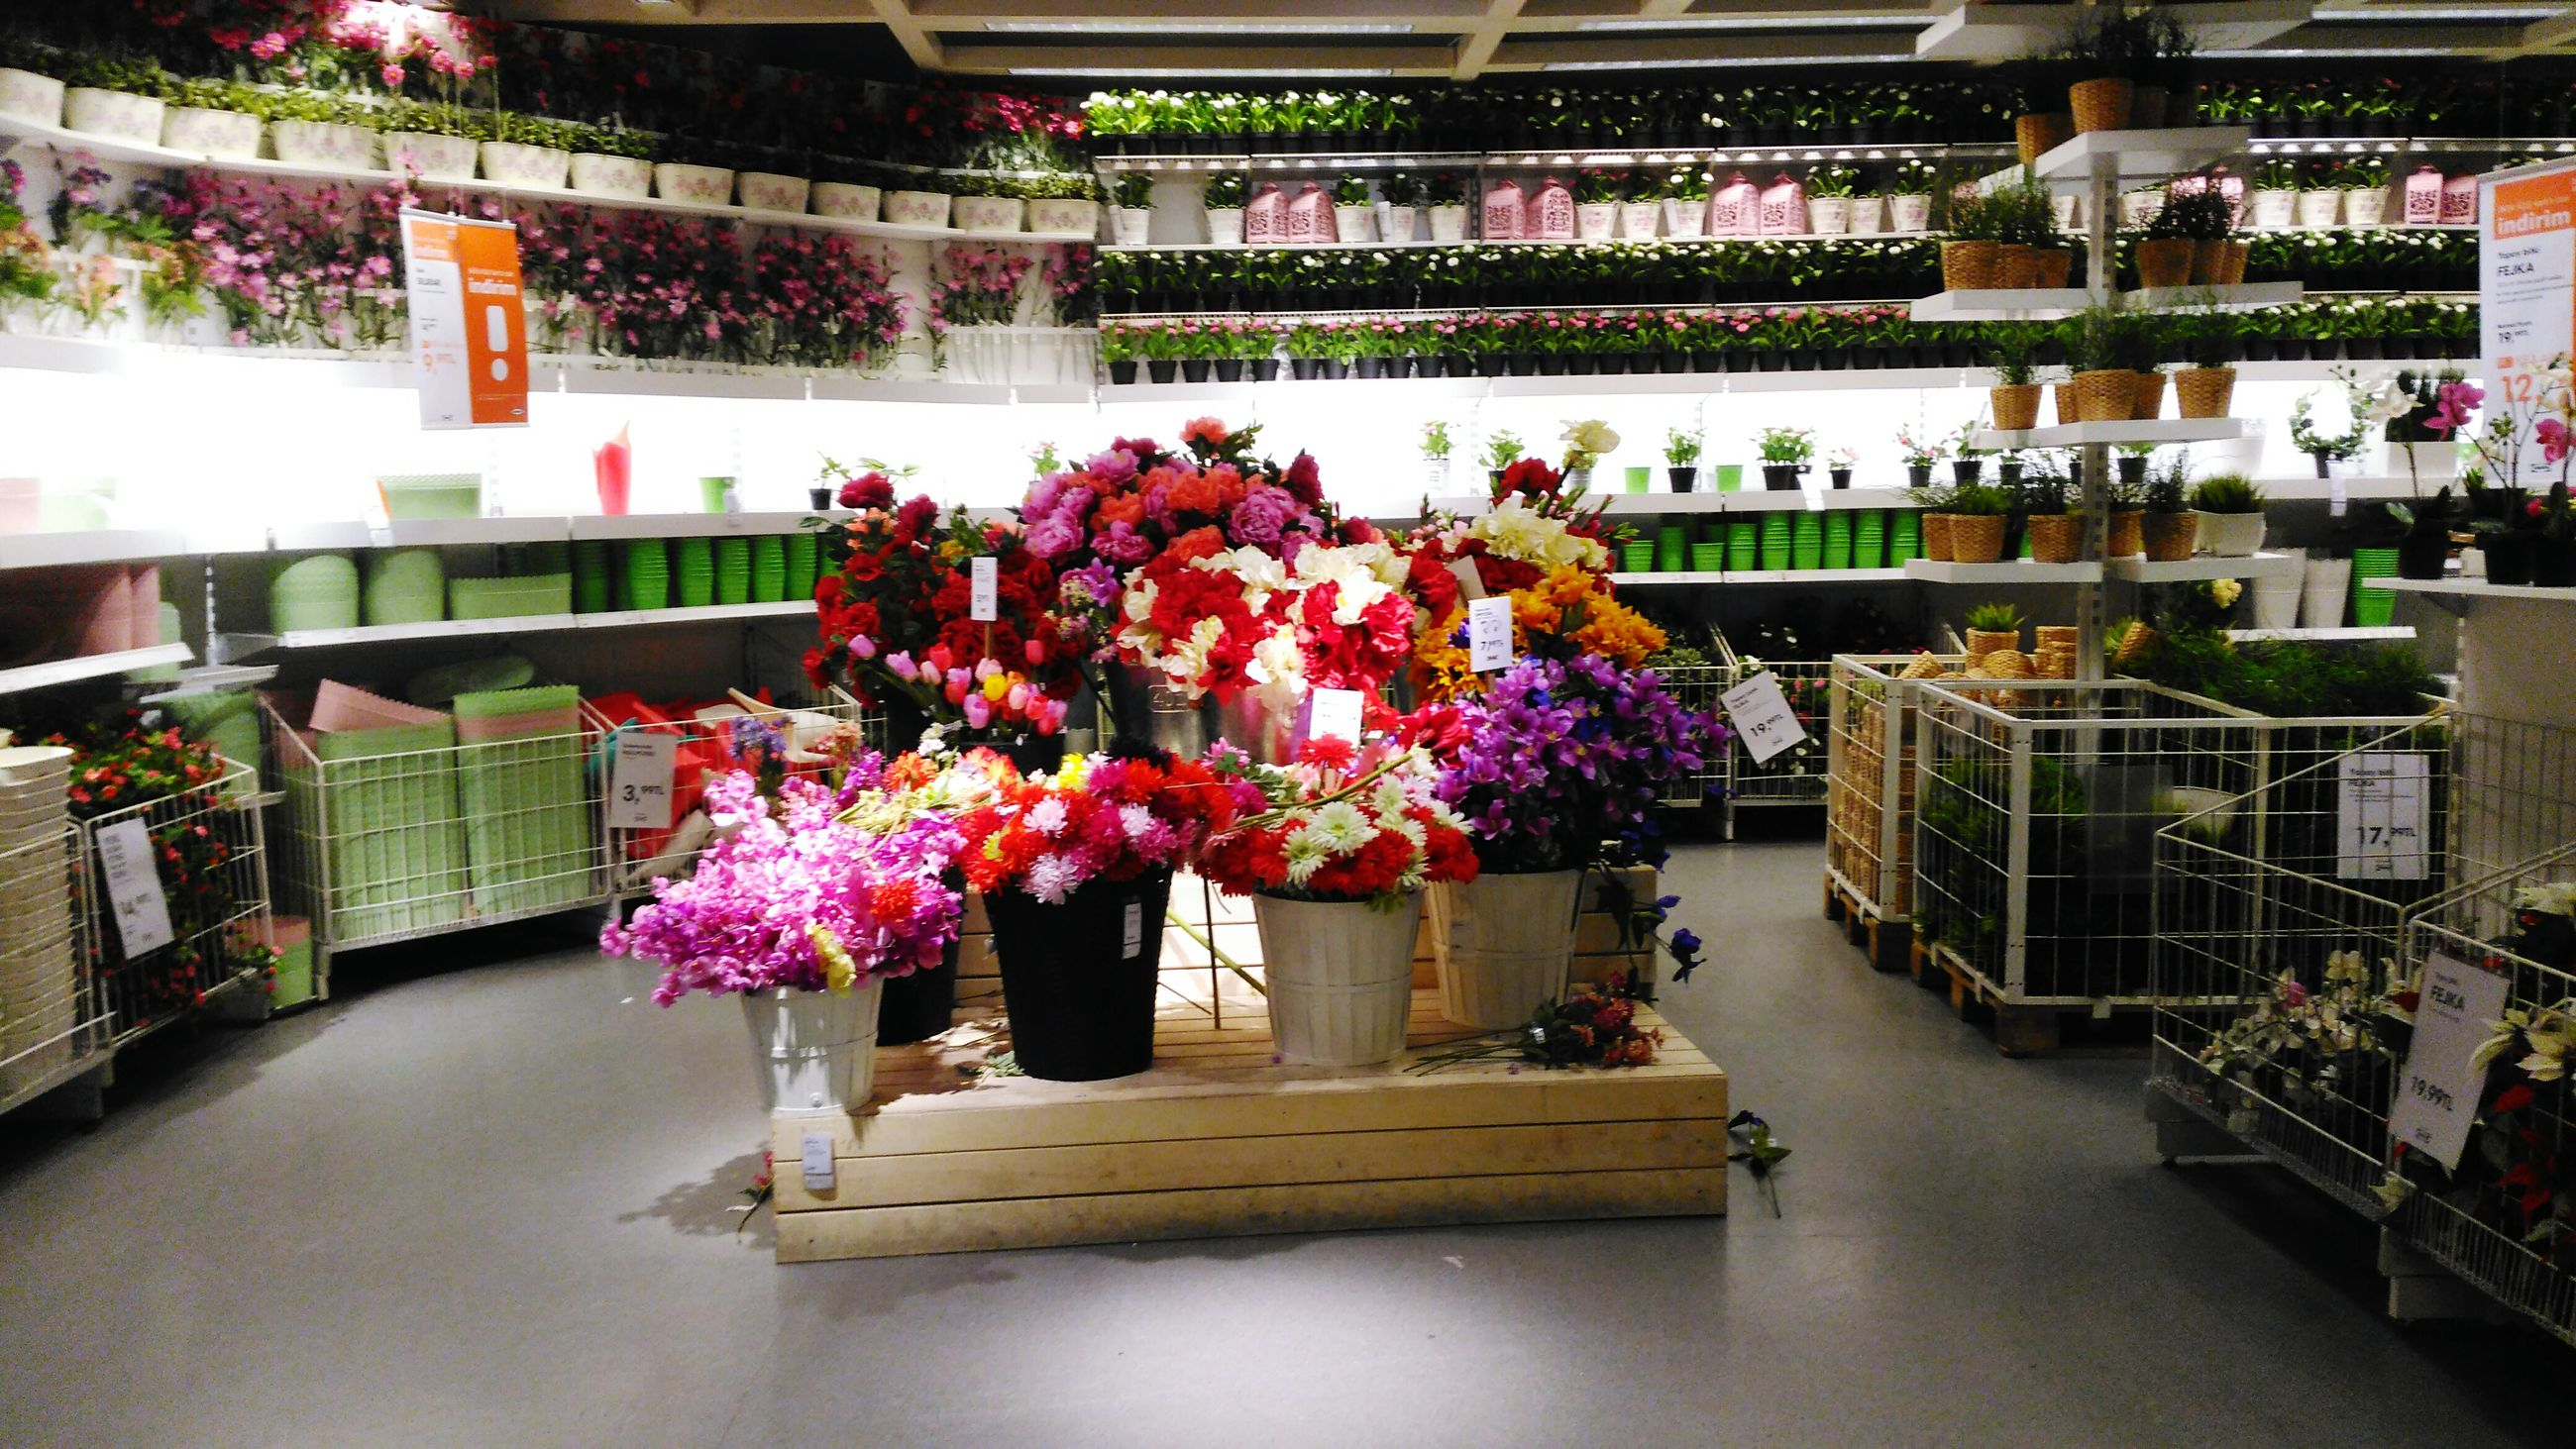 flower, for sale, variation, retail, freshness, choice, arrangement, multi colored, market stall, large group of objects, abundance, market, potted plant, hanging, built structure, table, small business, decoration, indoors, day